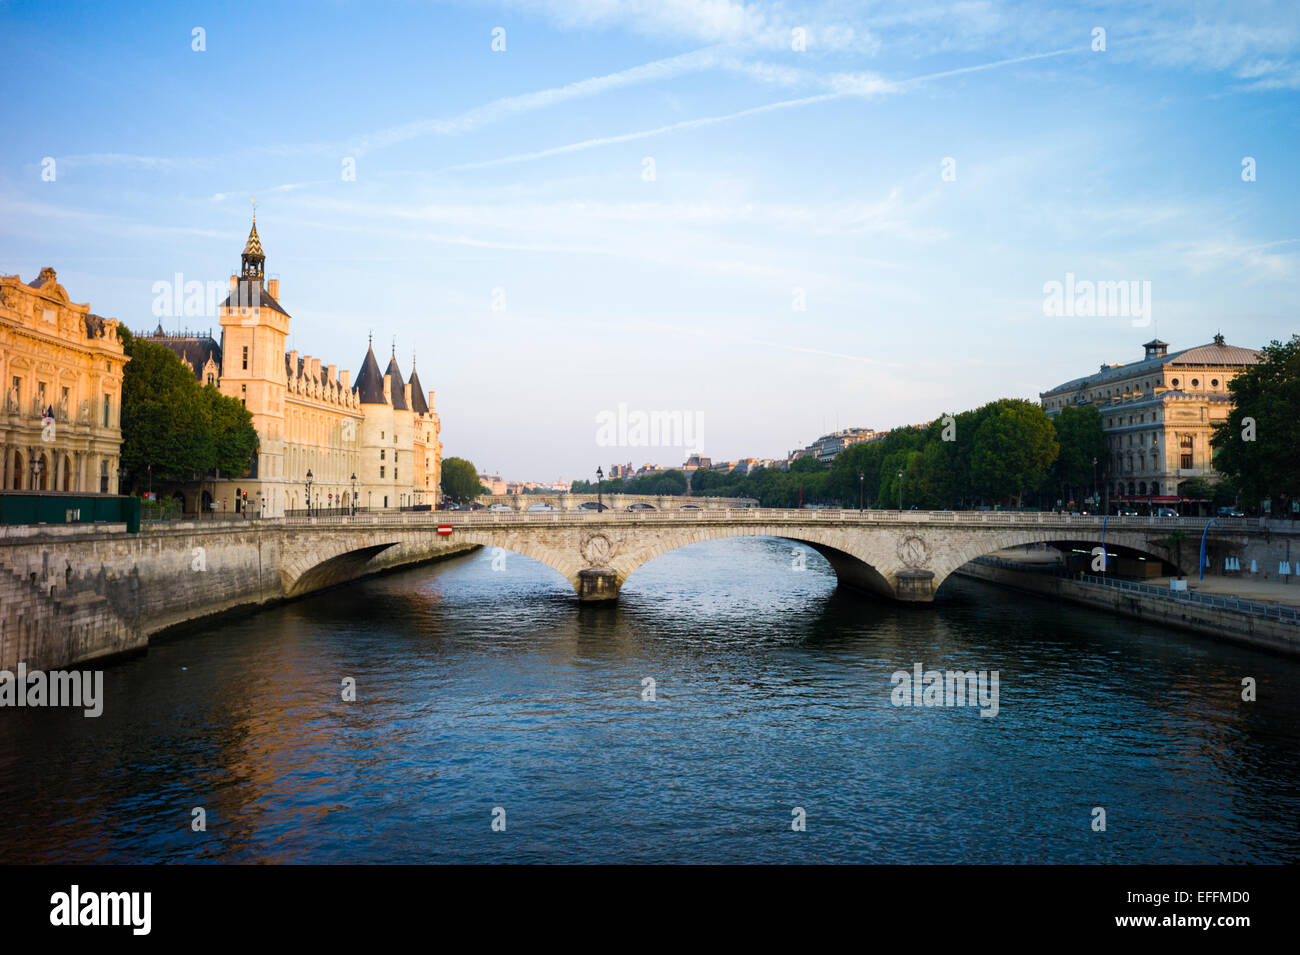 River Seine, Concergerie and Pont au Change in early morning light. Paris, France - Stock Image